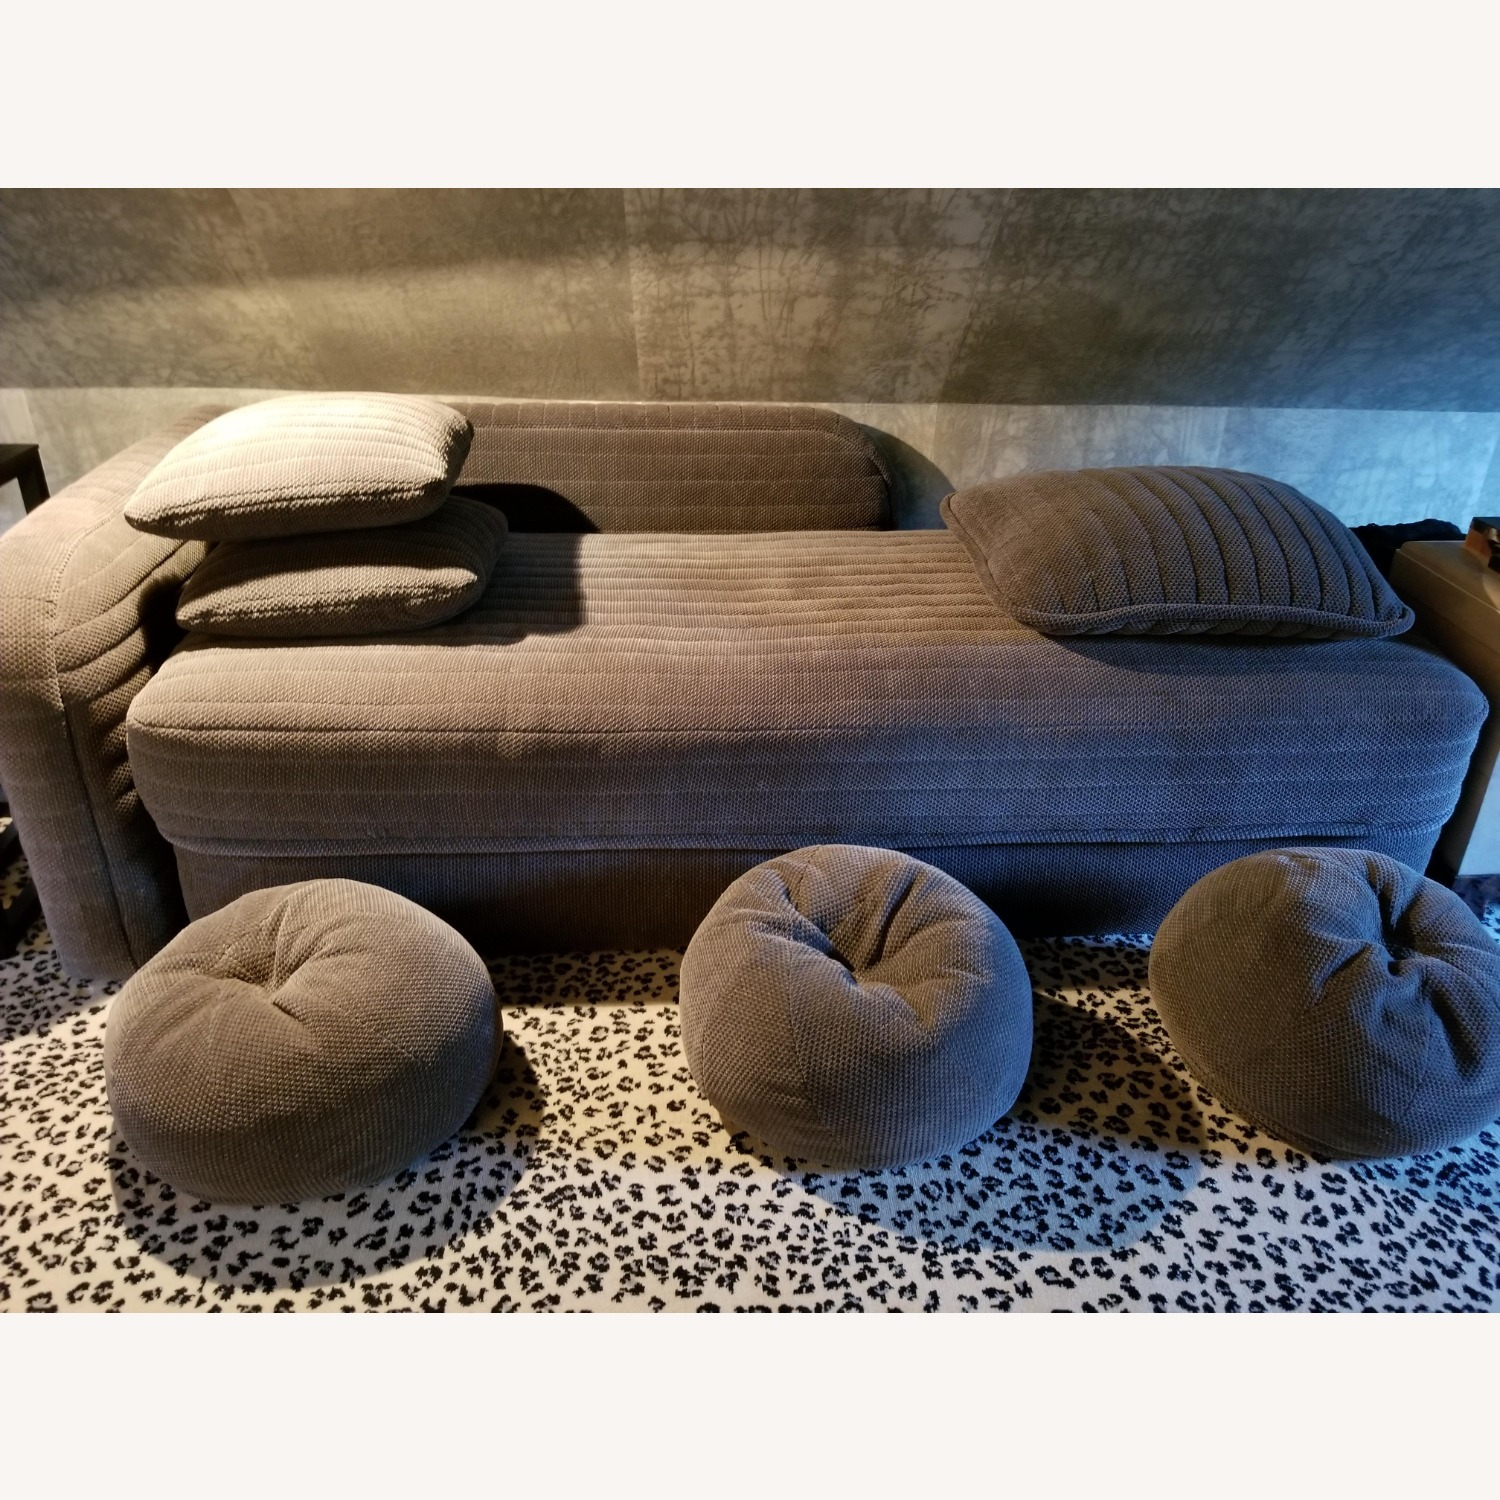 Donghia Daybed W/ Pillows - Queen Fold Out Bed - image-3